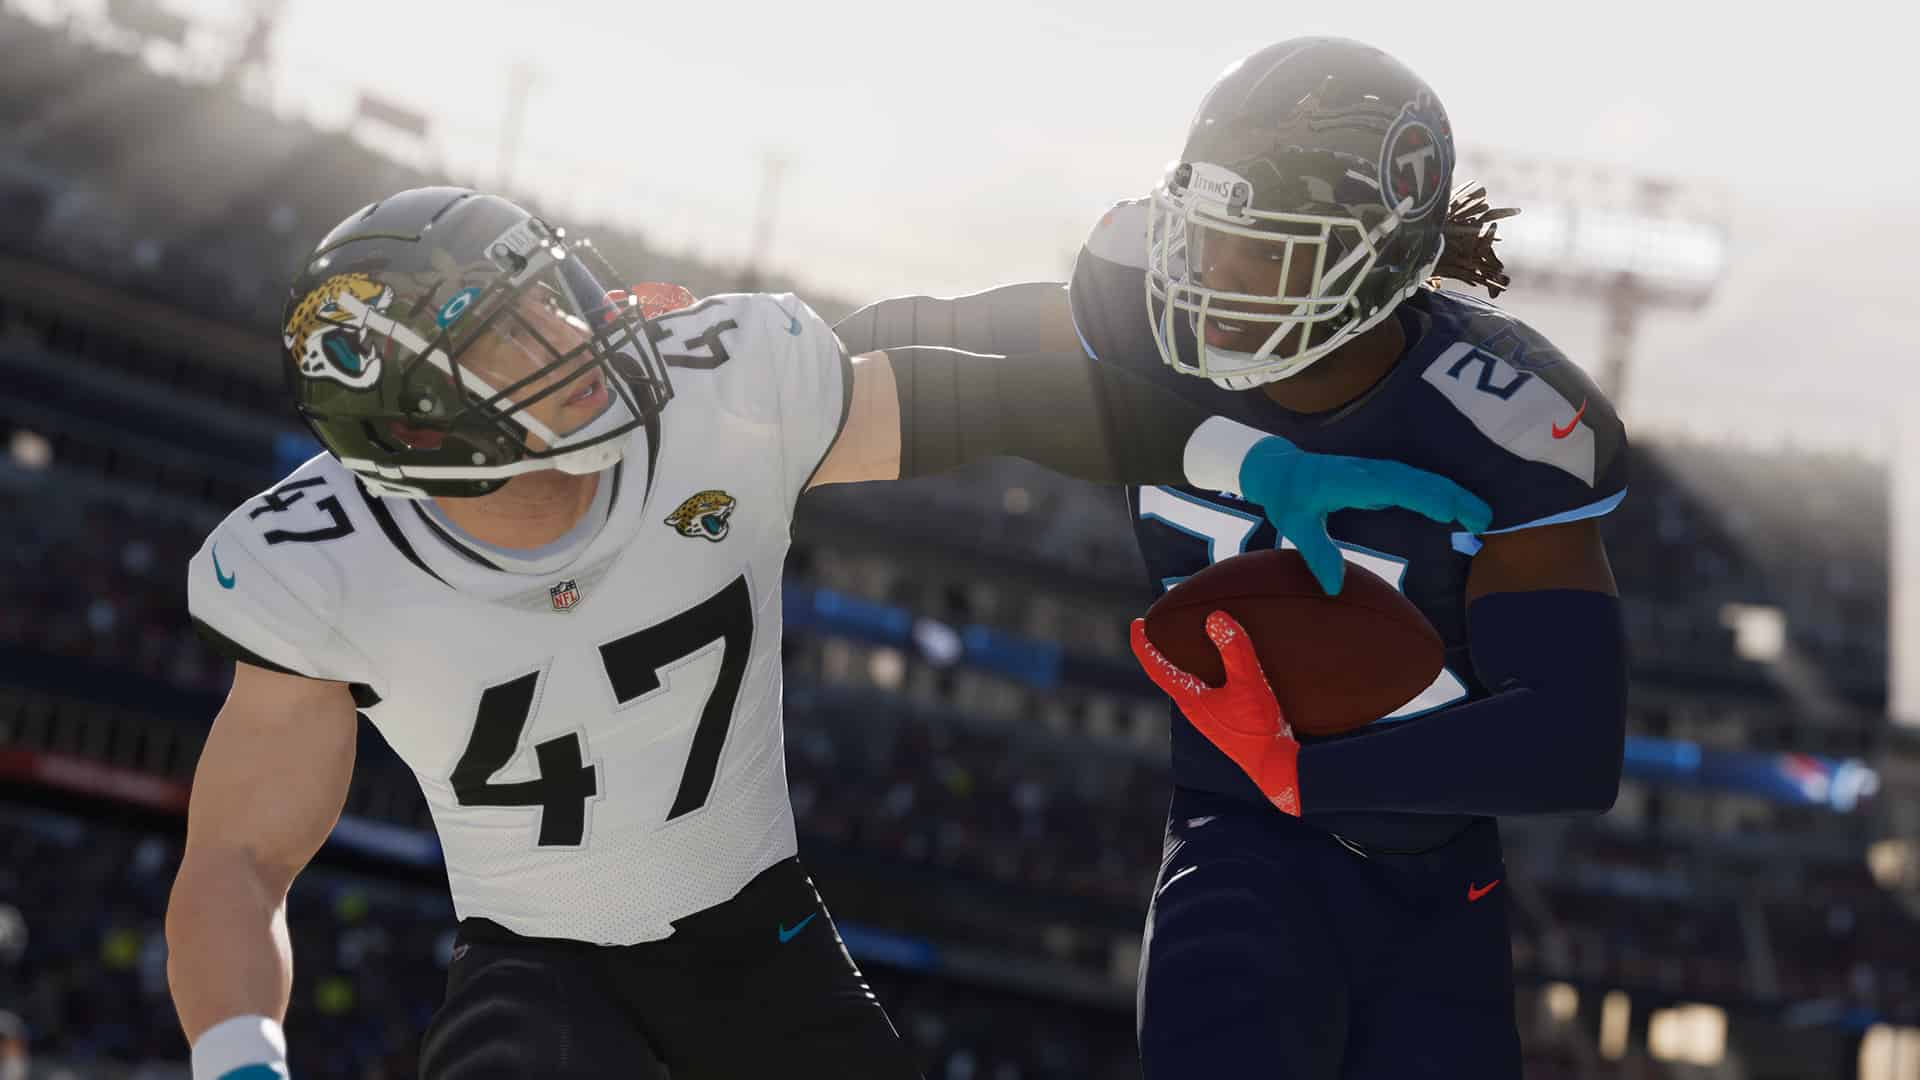 madden-22-head-to-head-feature-not-working-2021